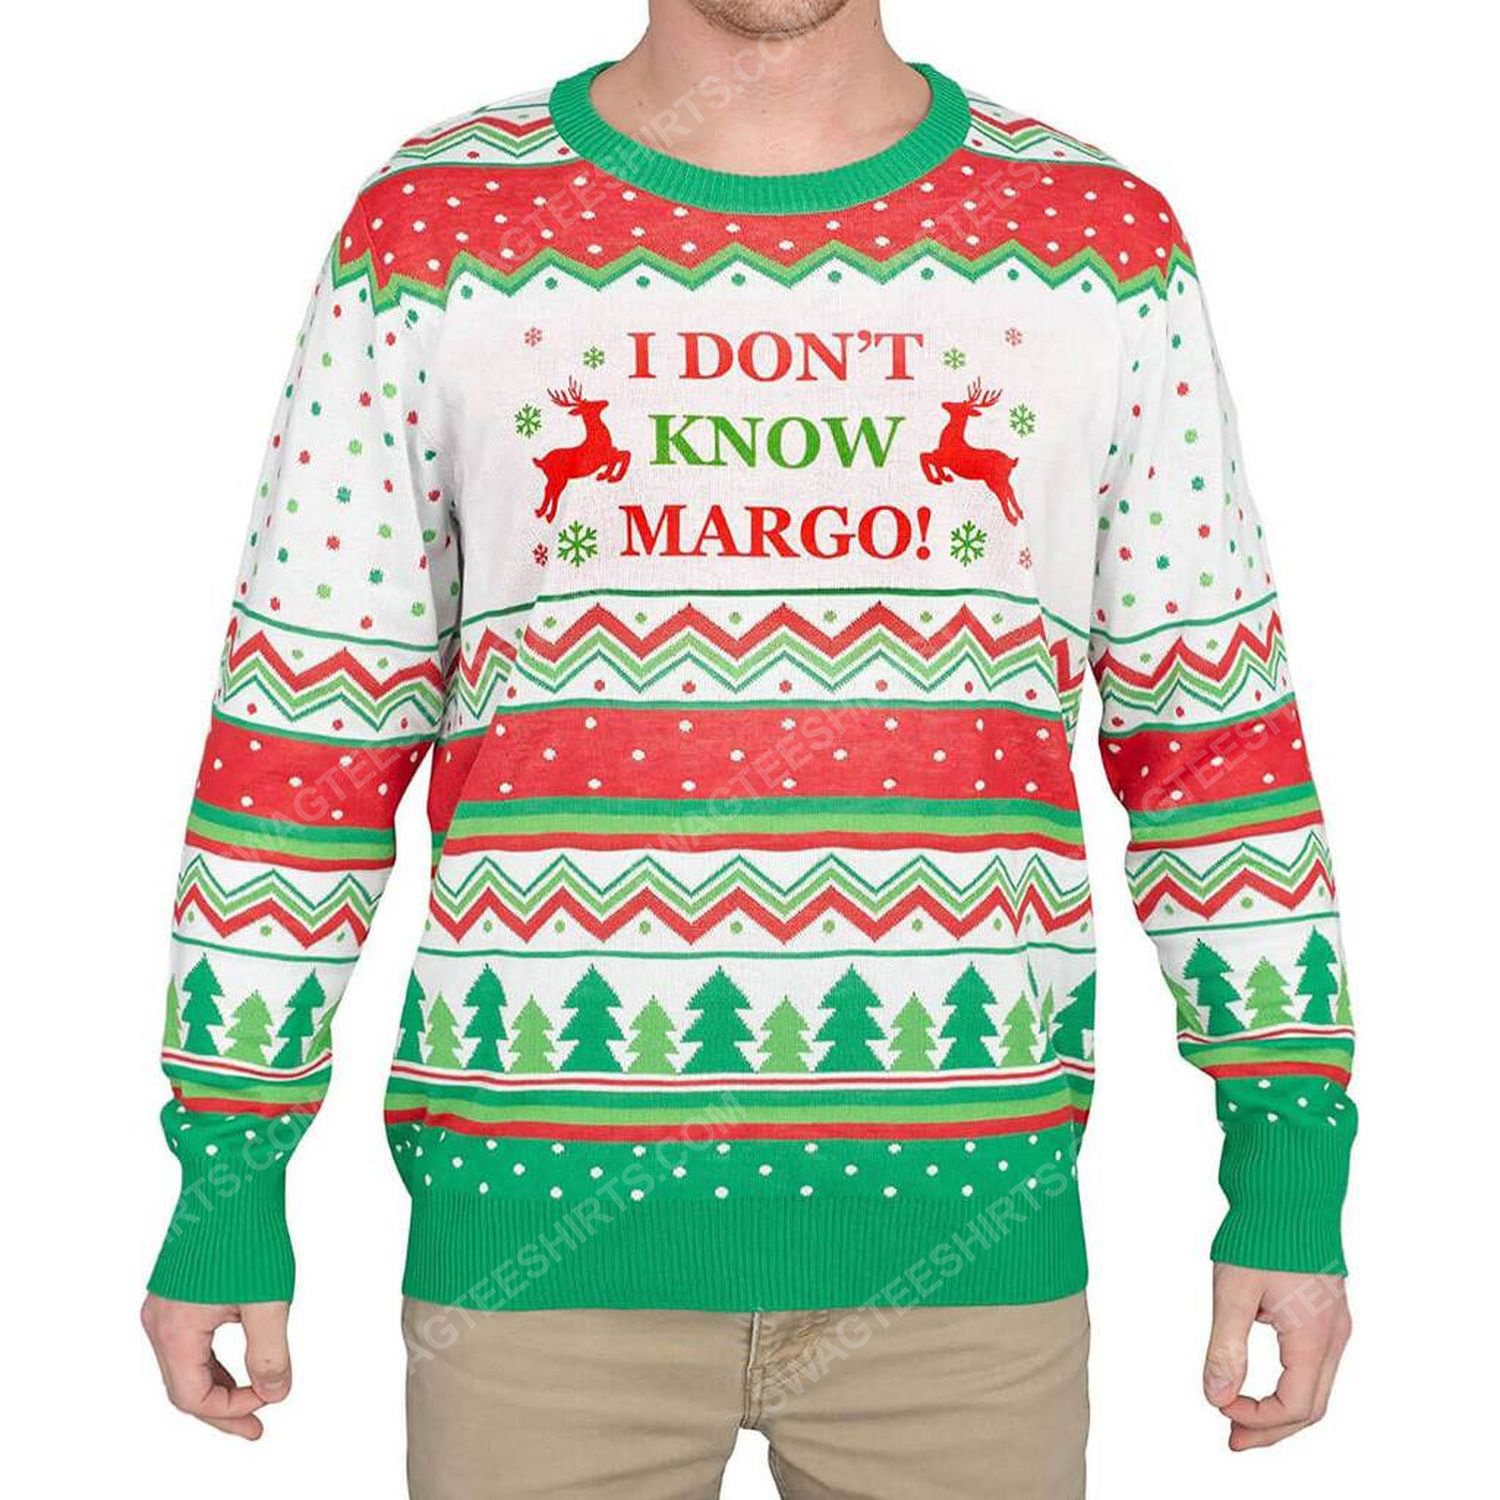 I don't know margo full print ugly christmas sweater 2 - Copy